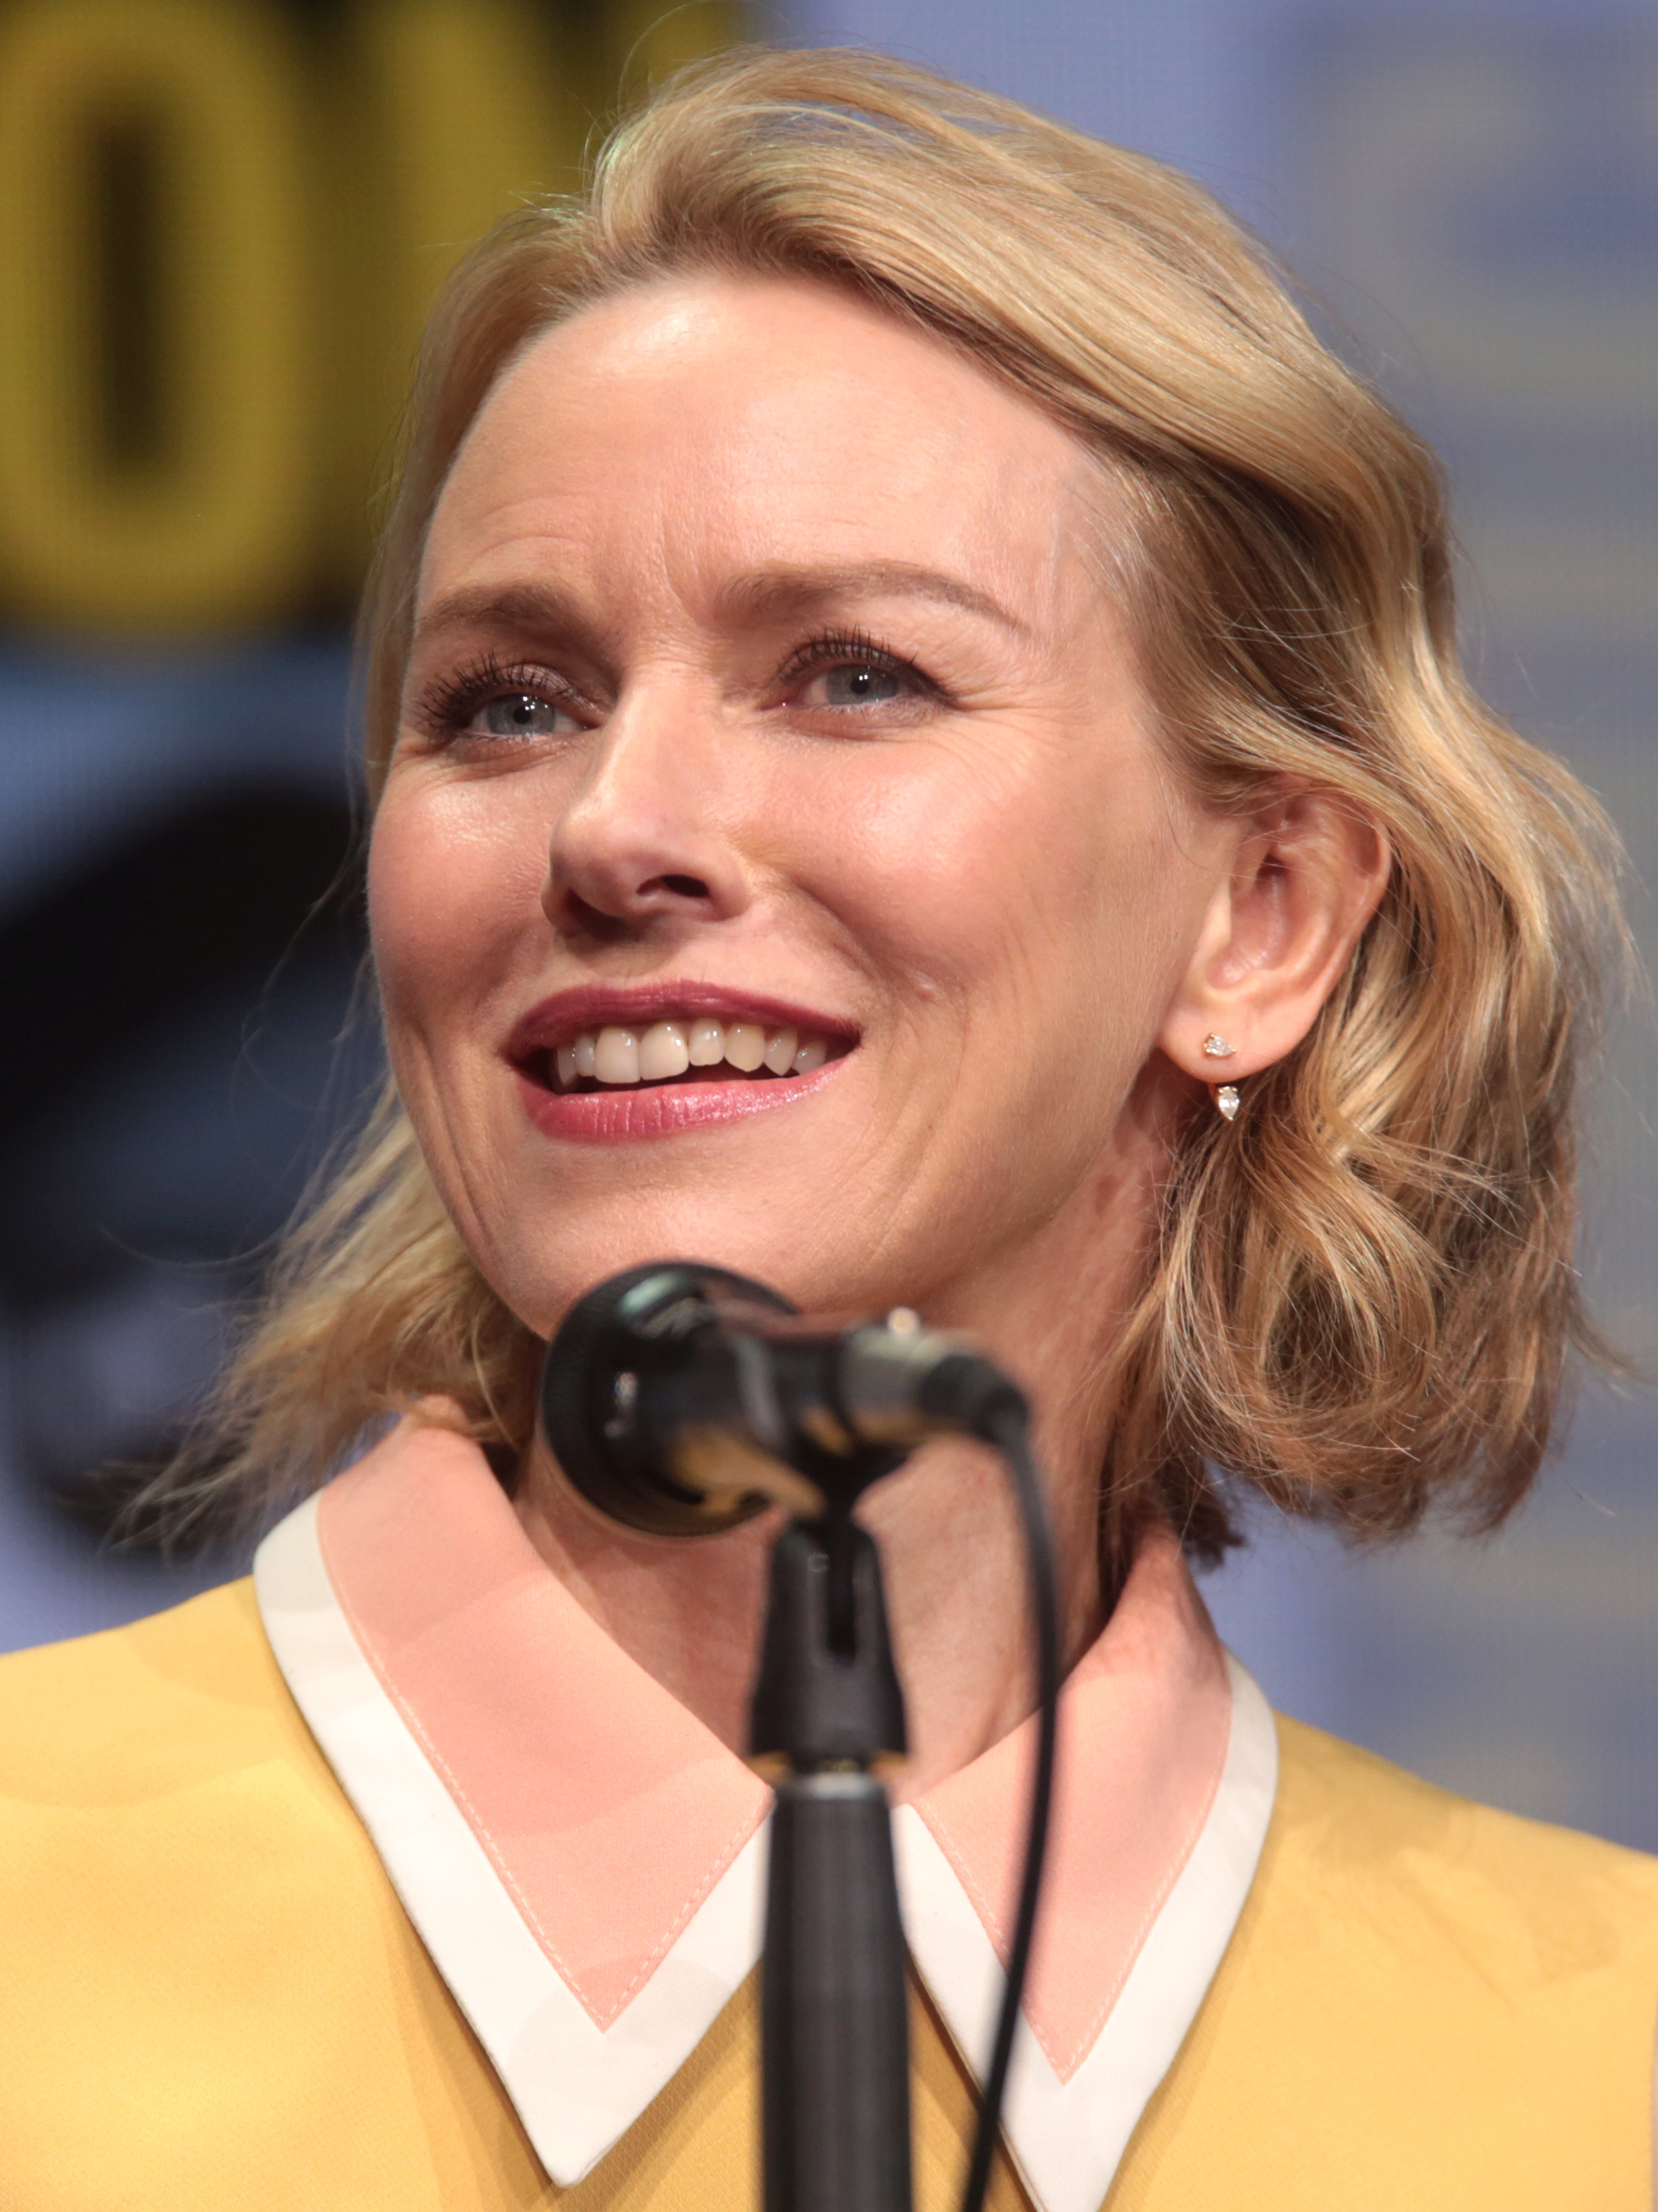 Naomi Watts 2019: Husband, net worth, tattoos, smoking ...